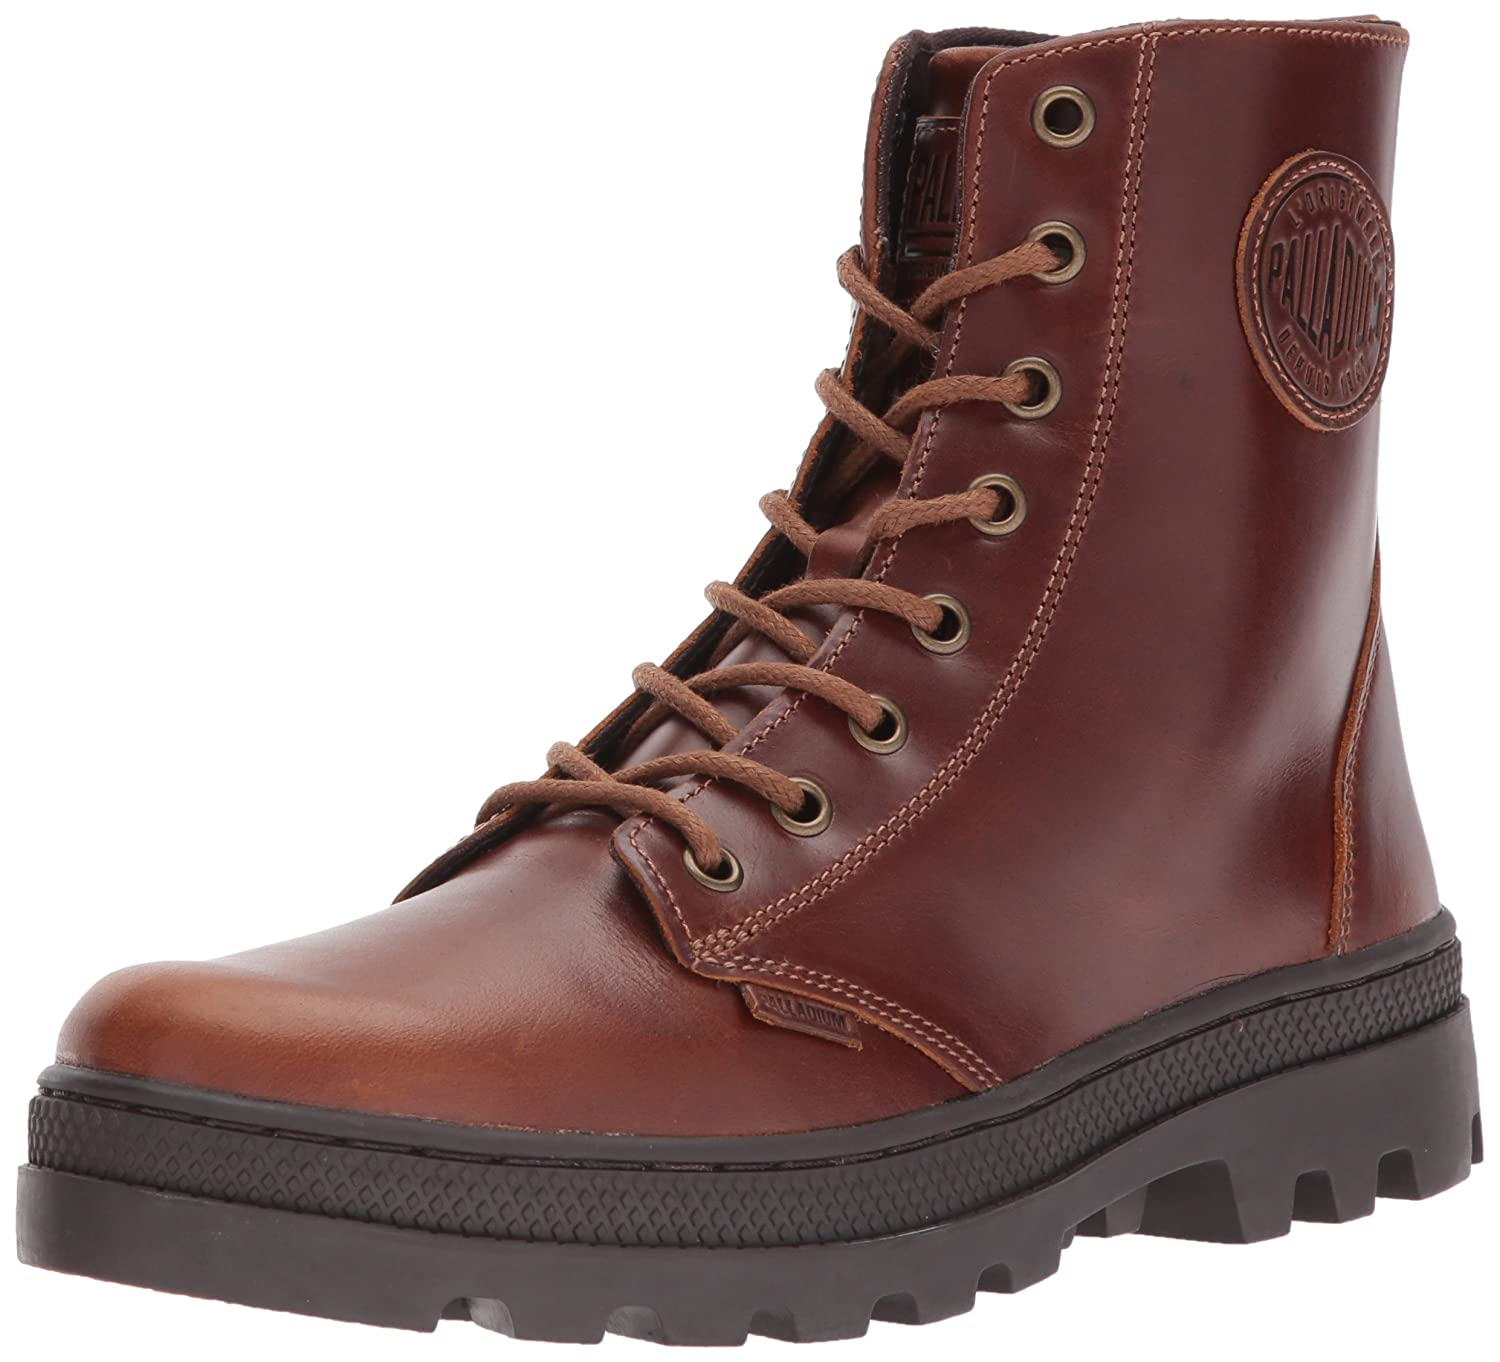 Palladium Women's Pallabosse Off Lea Chukka Boot B01MSDPXQJ 9 B(M) US|Sunrise/Chocolate